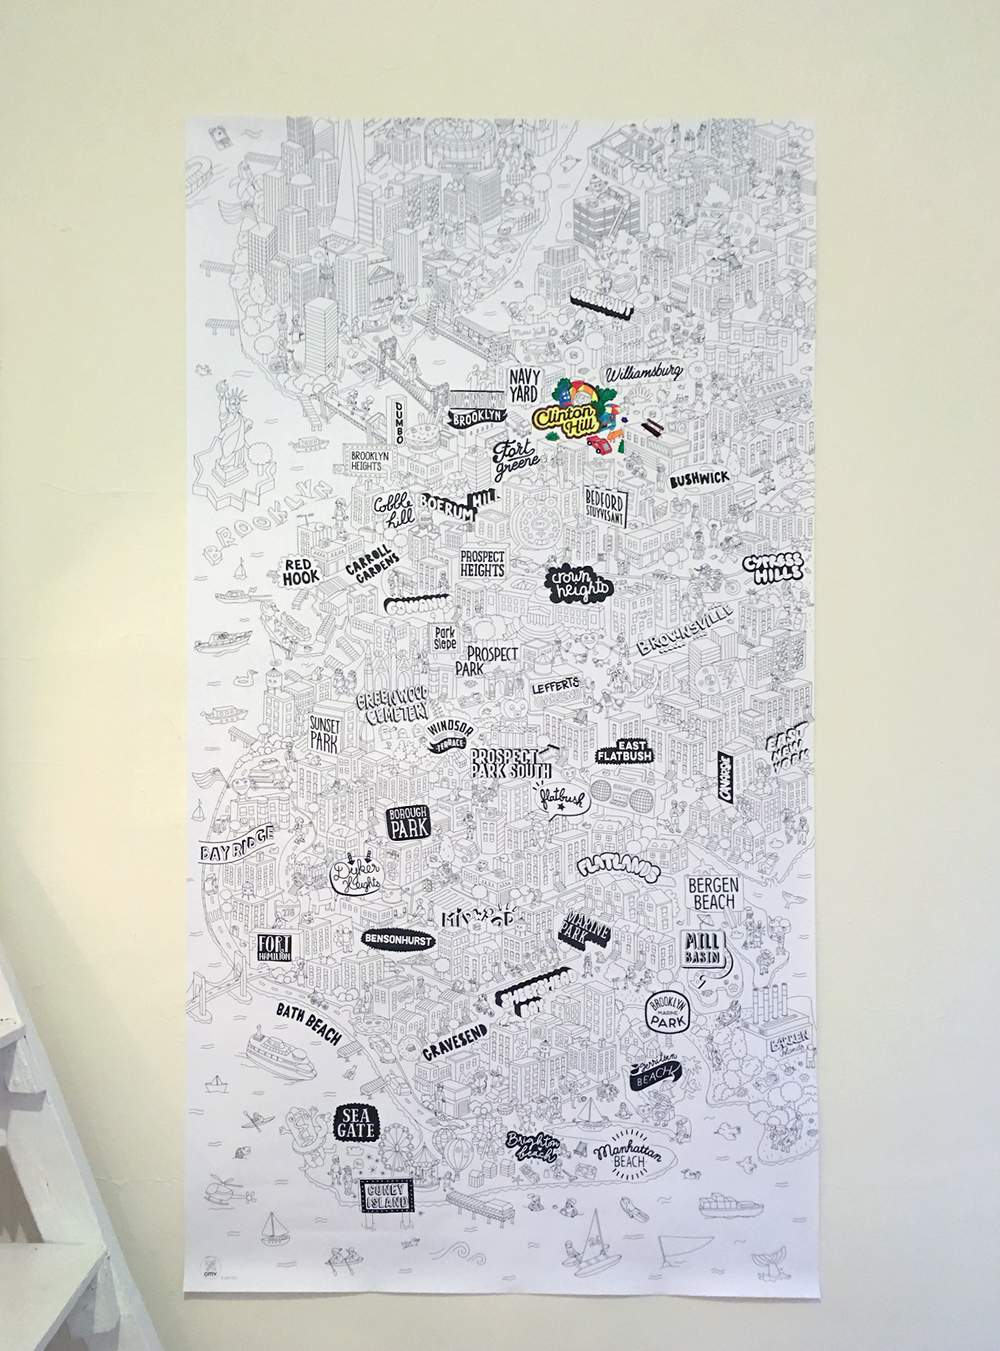 We bought this poster to help us figure out where everything is in Brooklyn. The cartoons help me find my way far better than Google Maps.